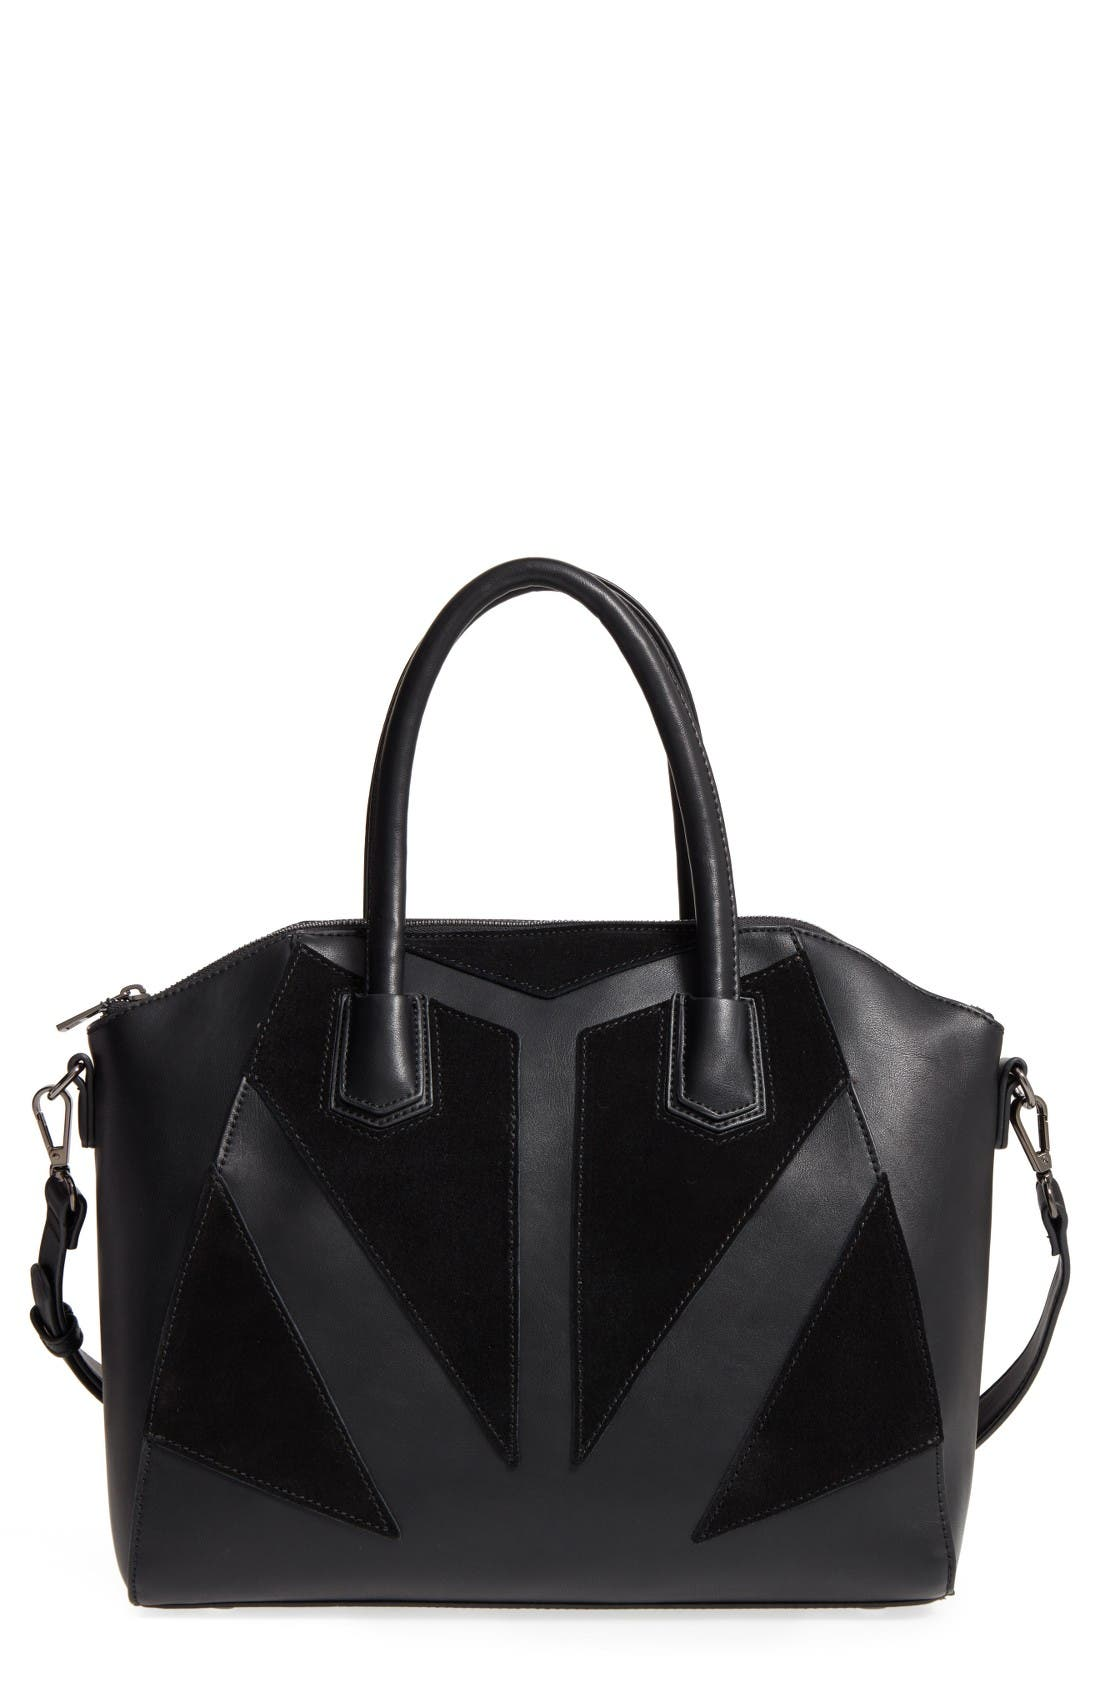 Main Image - Sole Society Rosamund Faux Leather and Faux Suede Satchel